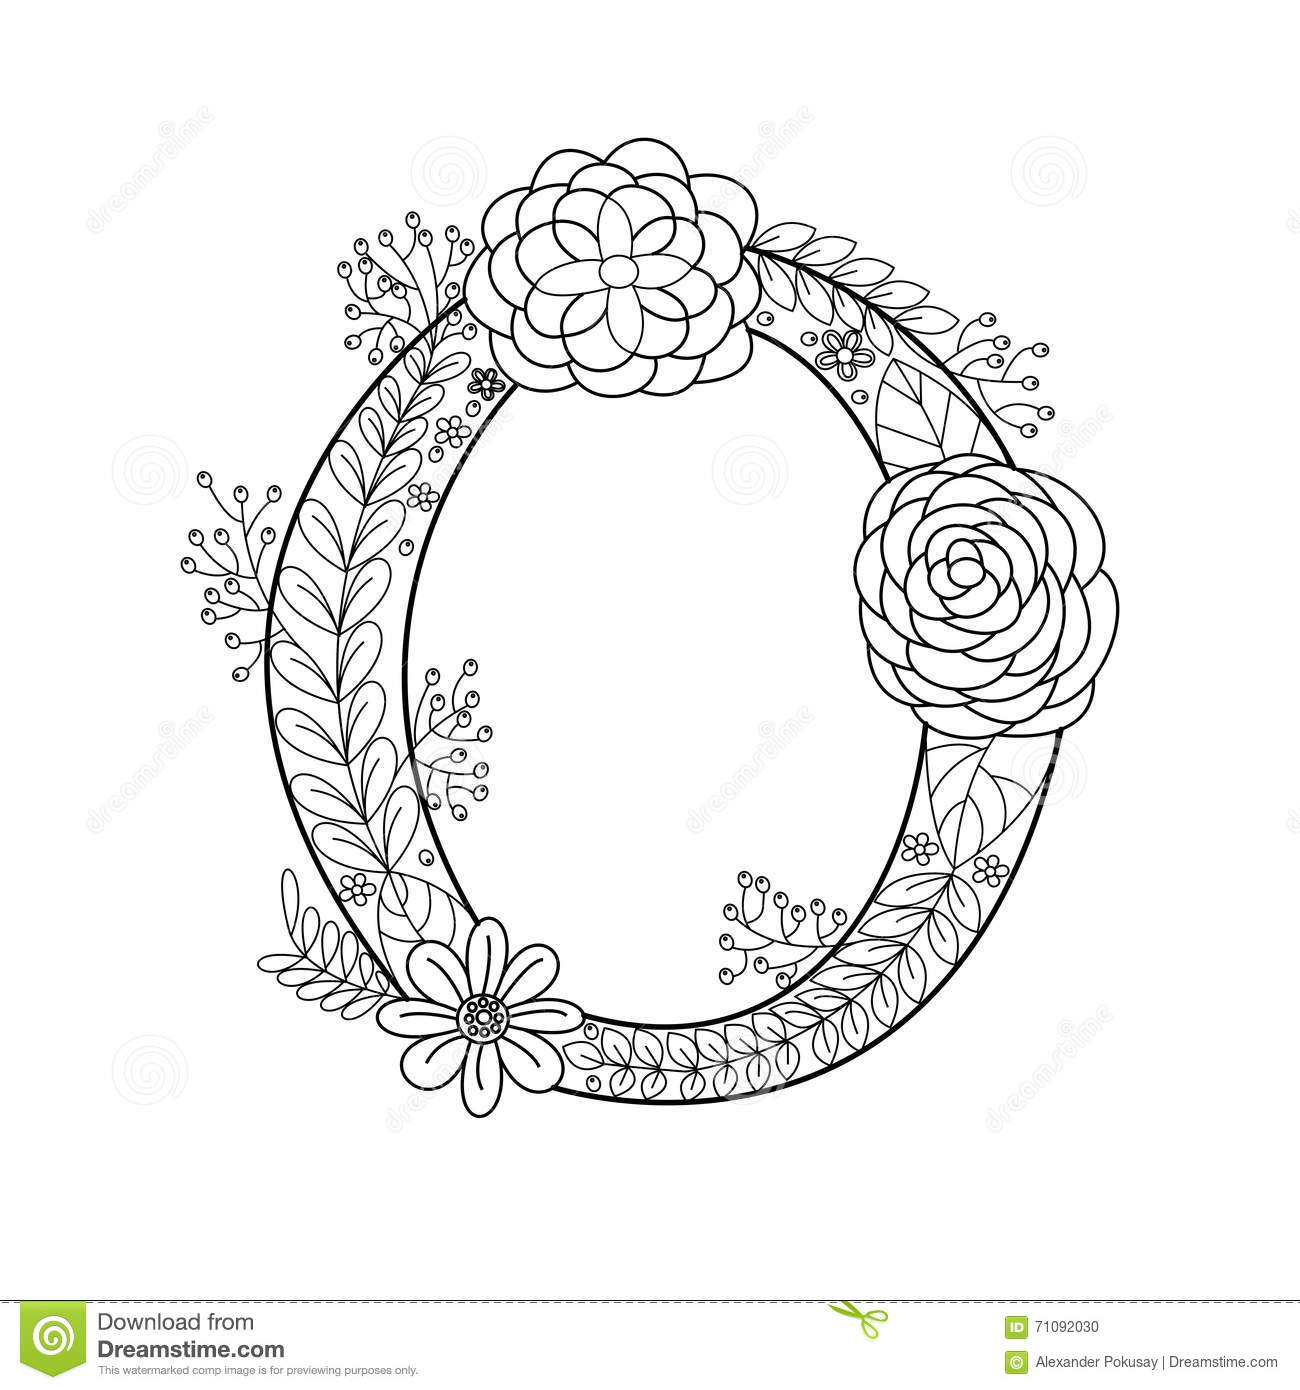 Letter O Coloring Book For Adults Vector Stock Vector